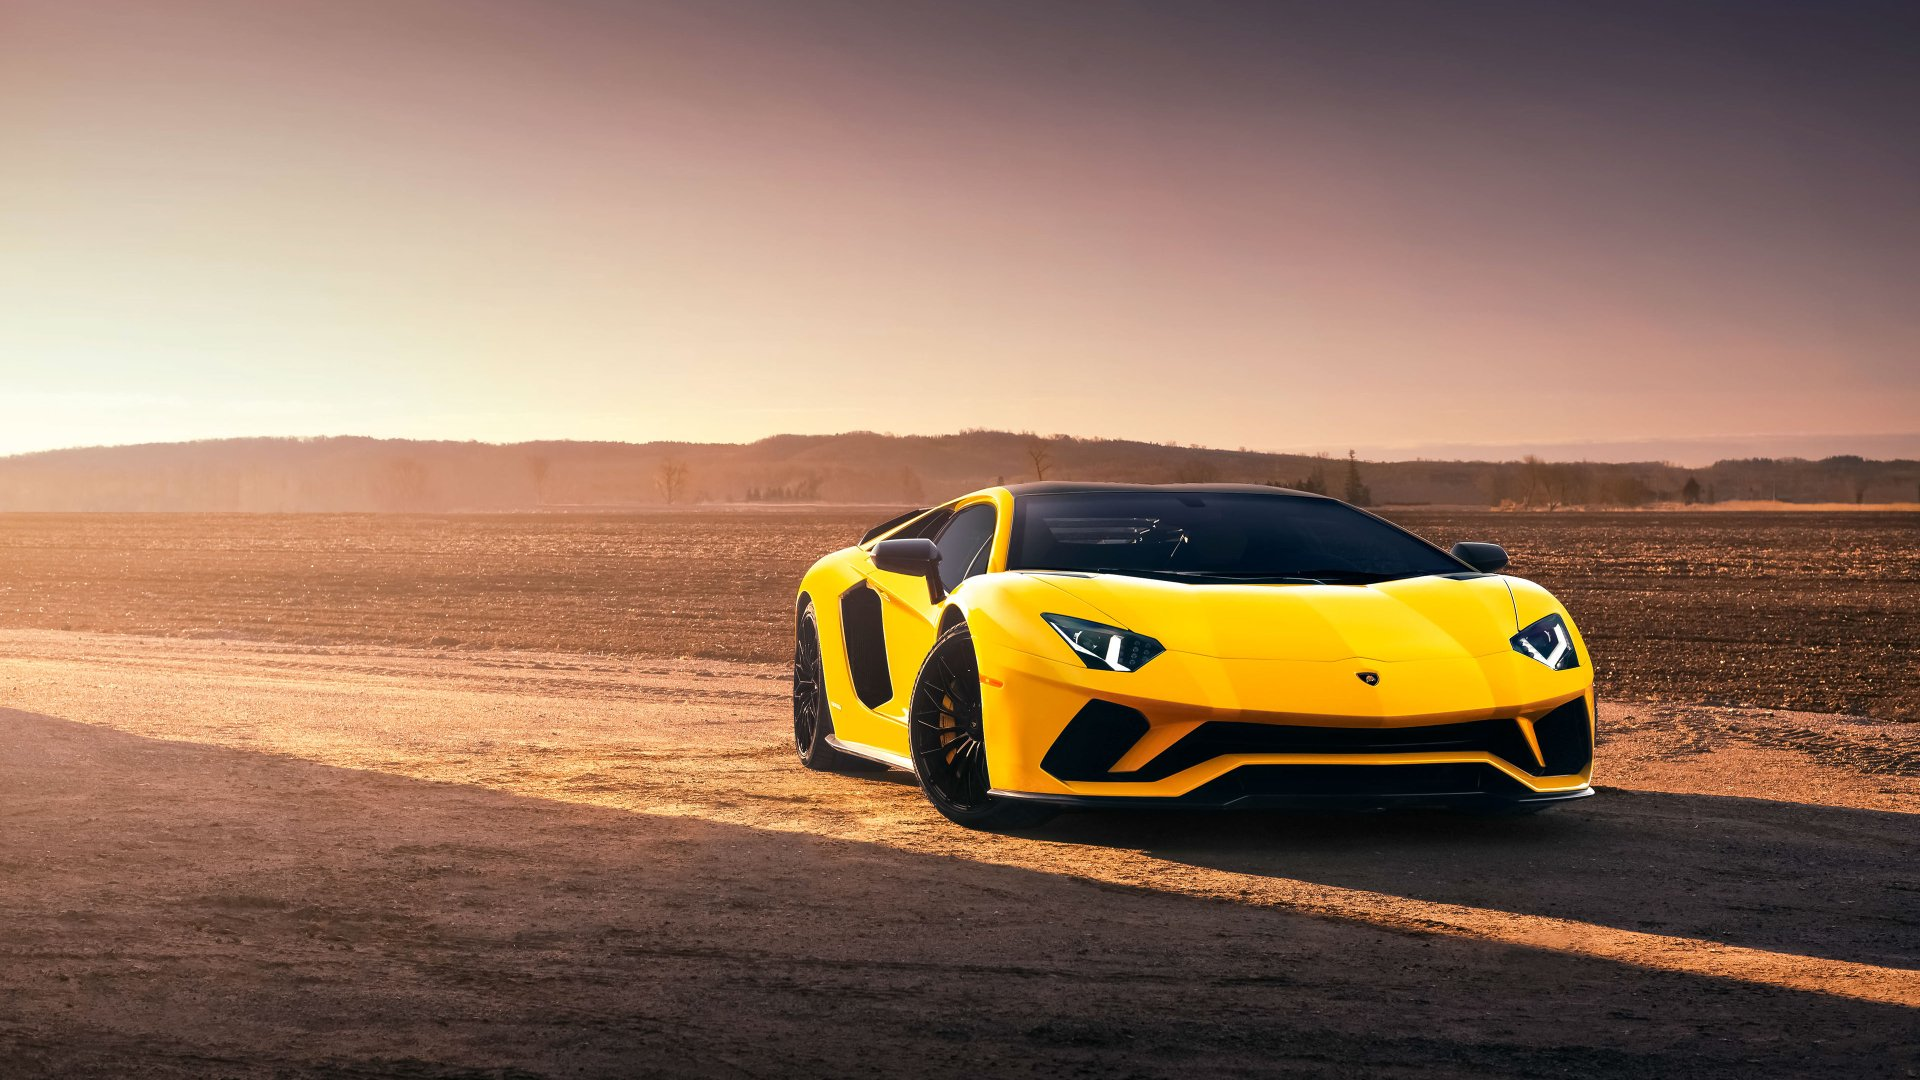 69 Lamborghini Aventador S Hd Wallpapers Background Images Wallpaper Abyss